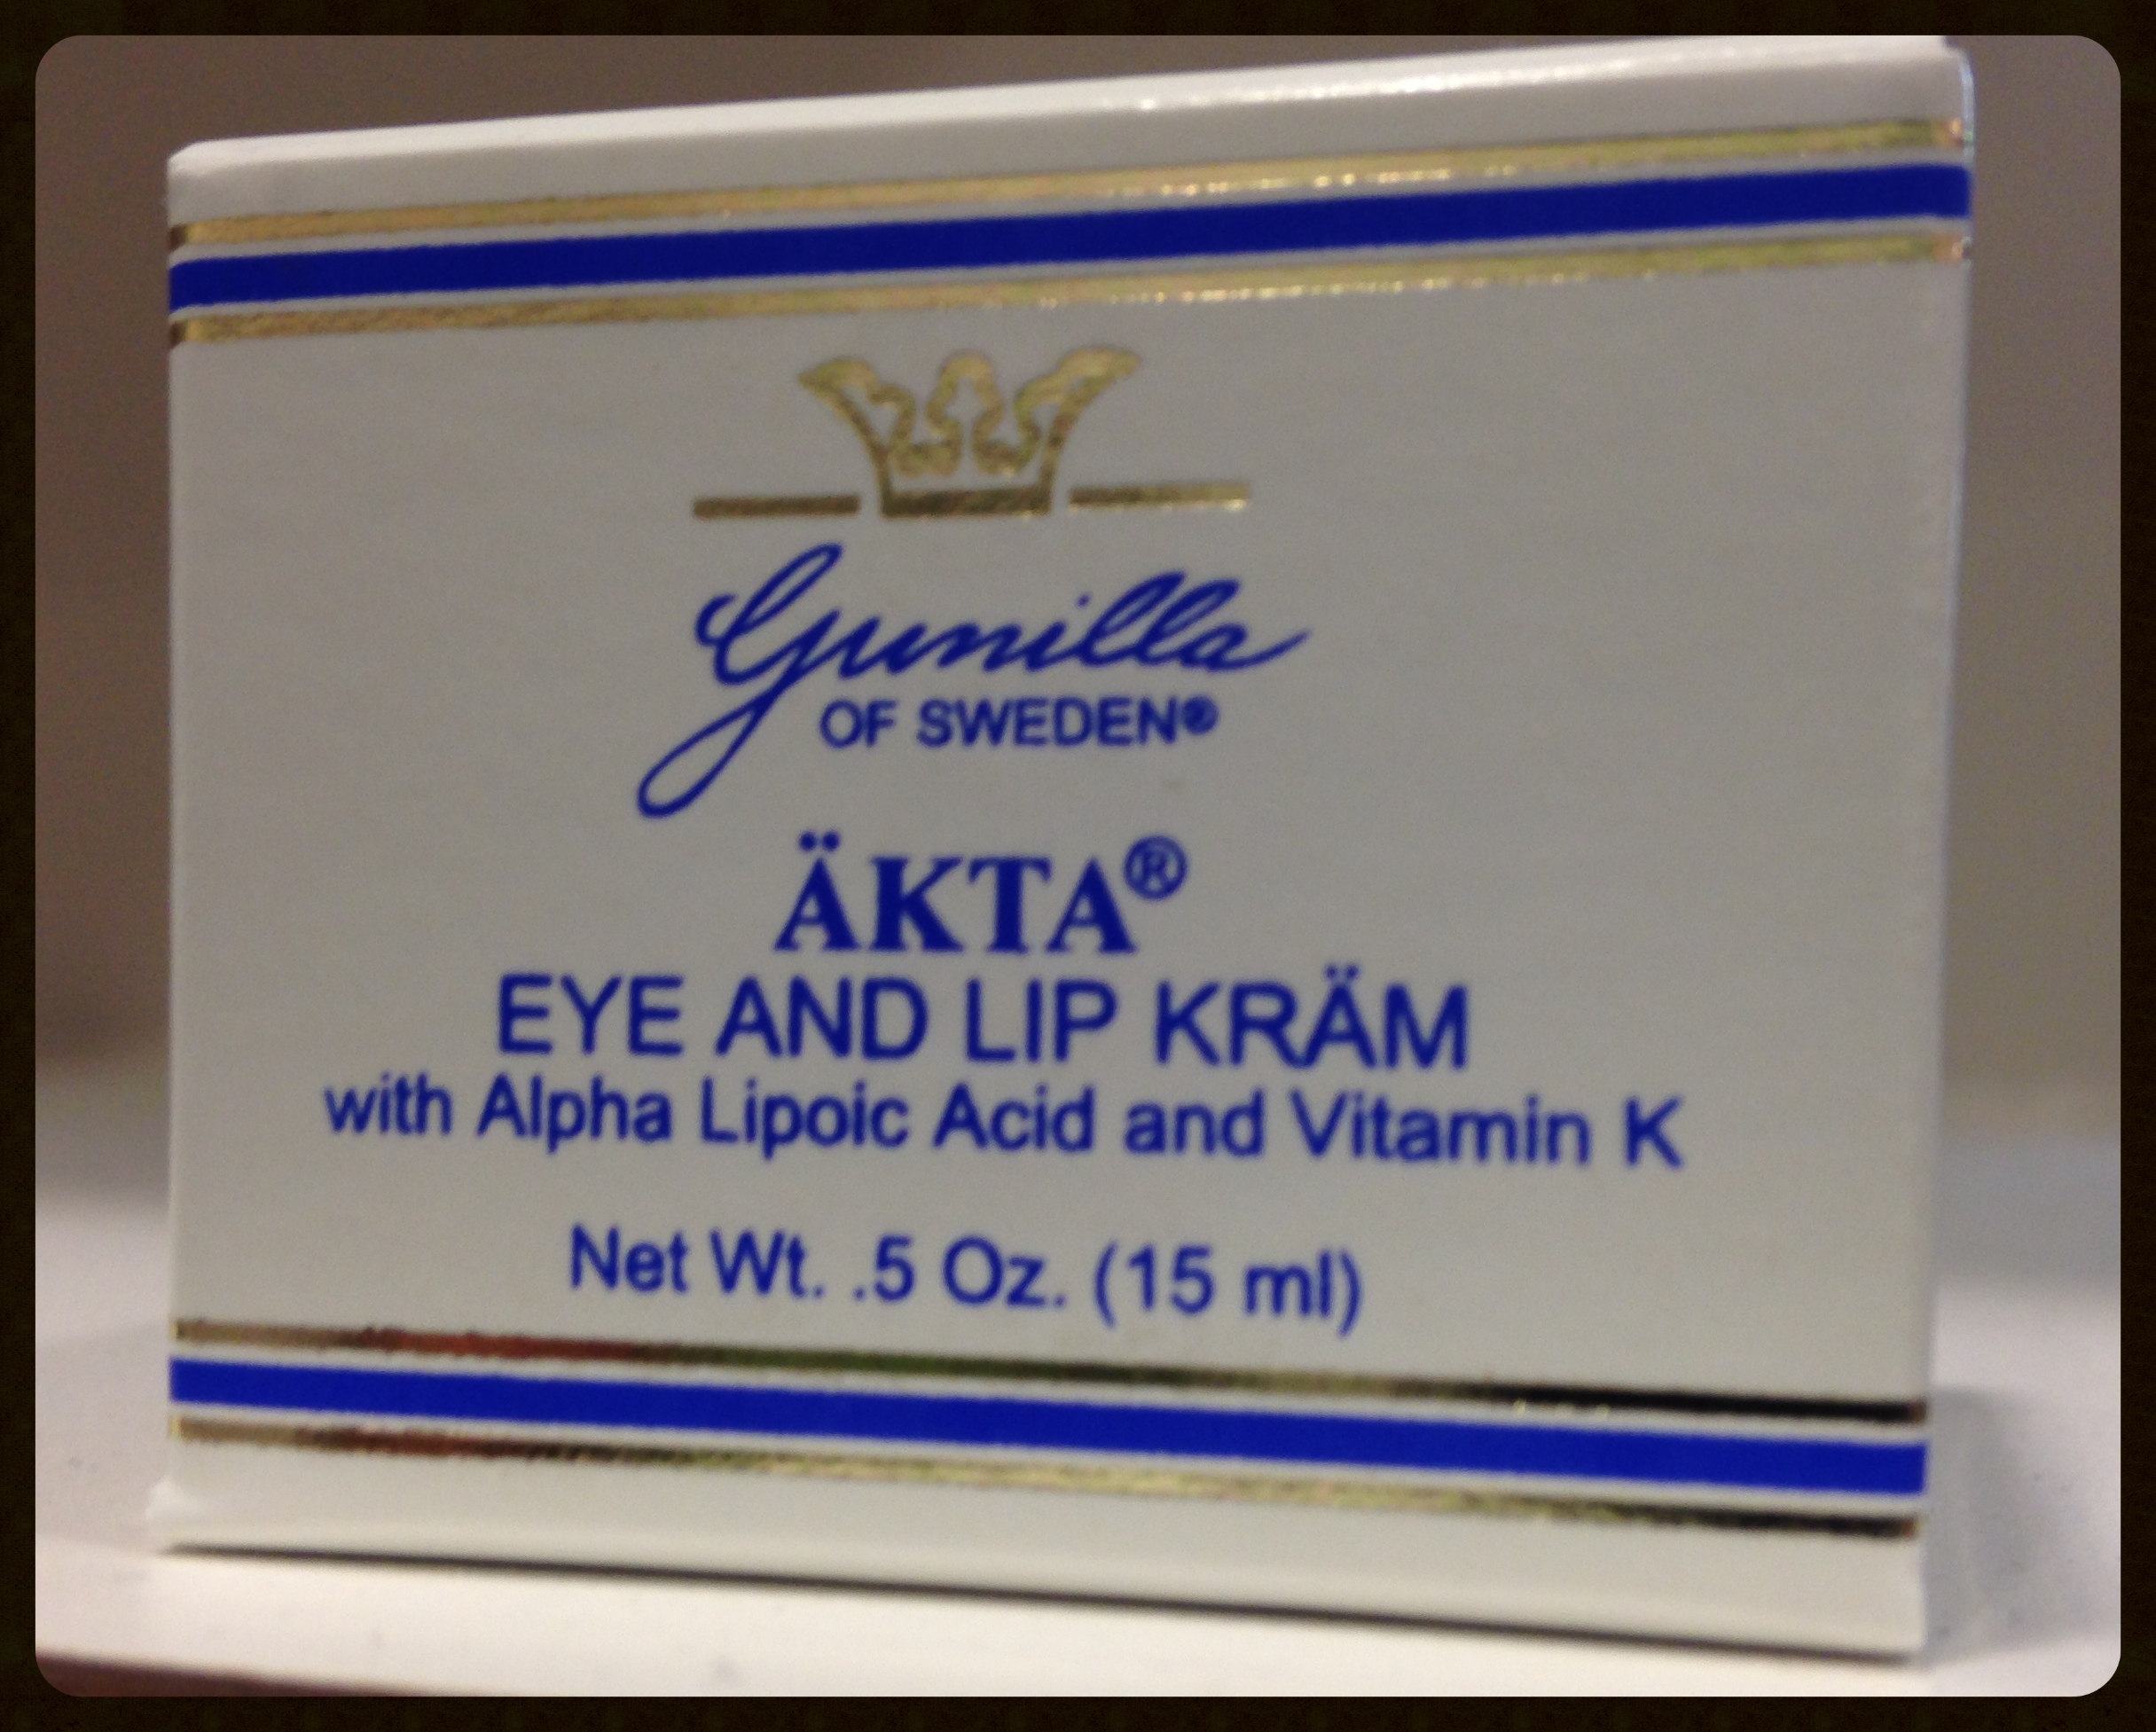 Try our eye and lip creamfrom AKTA featuring alpha lipoic acid and Vitamin K.